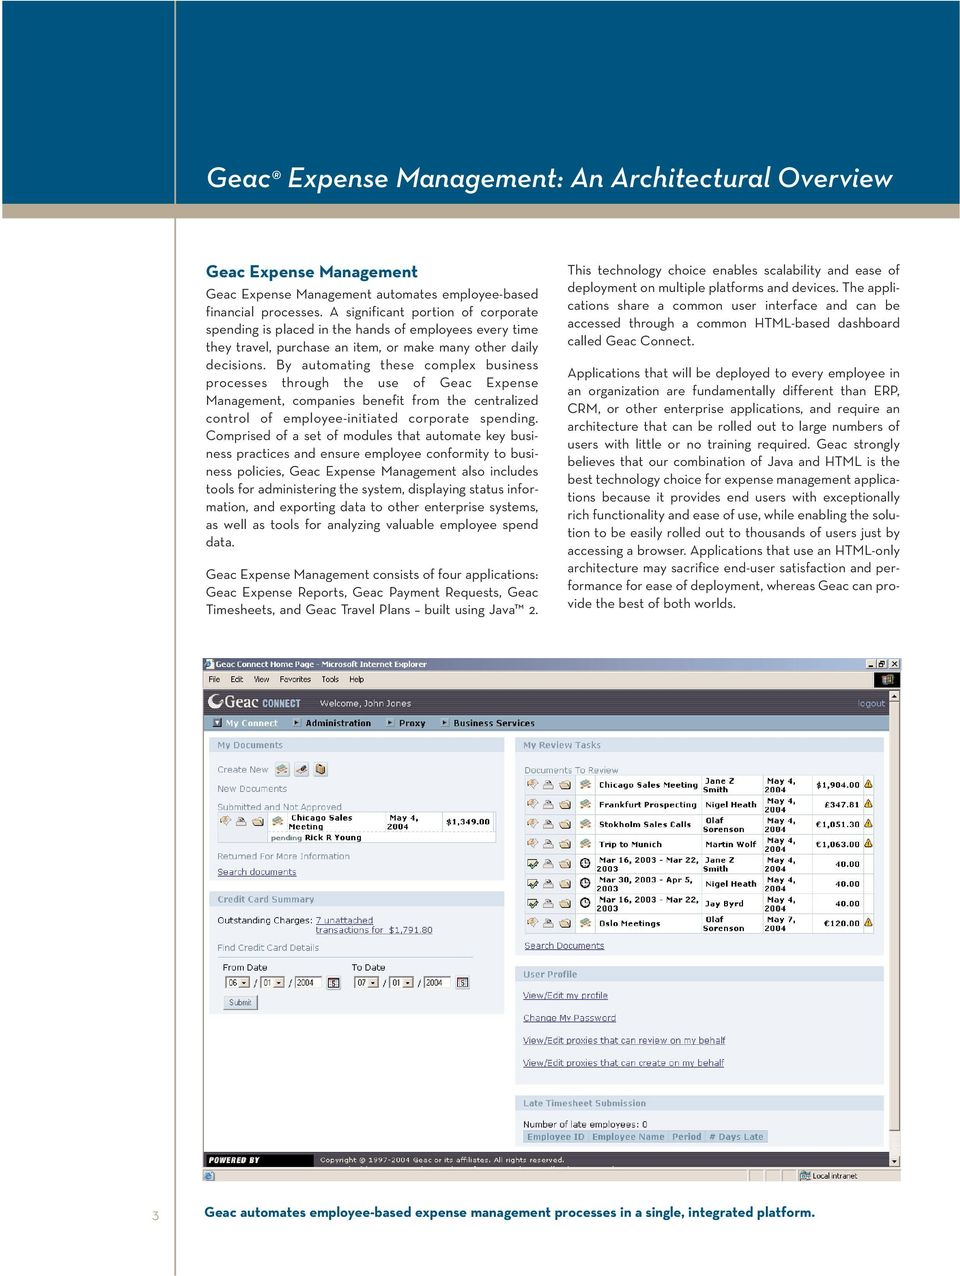 By automating these complex business processes through the use of Geac Expense Management, companies benefit from the centralized control of employee-initiated corporate spending.